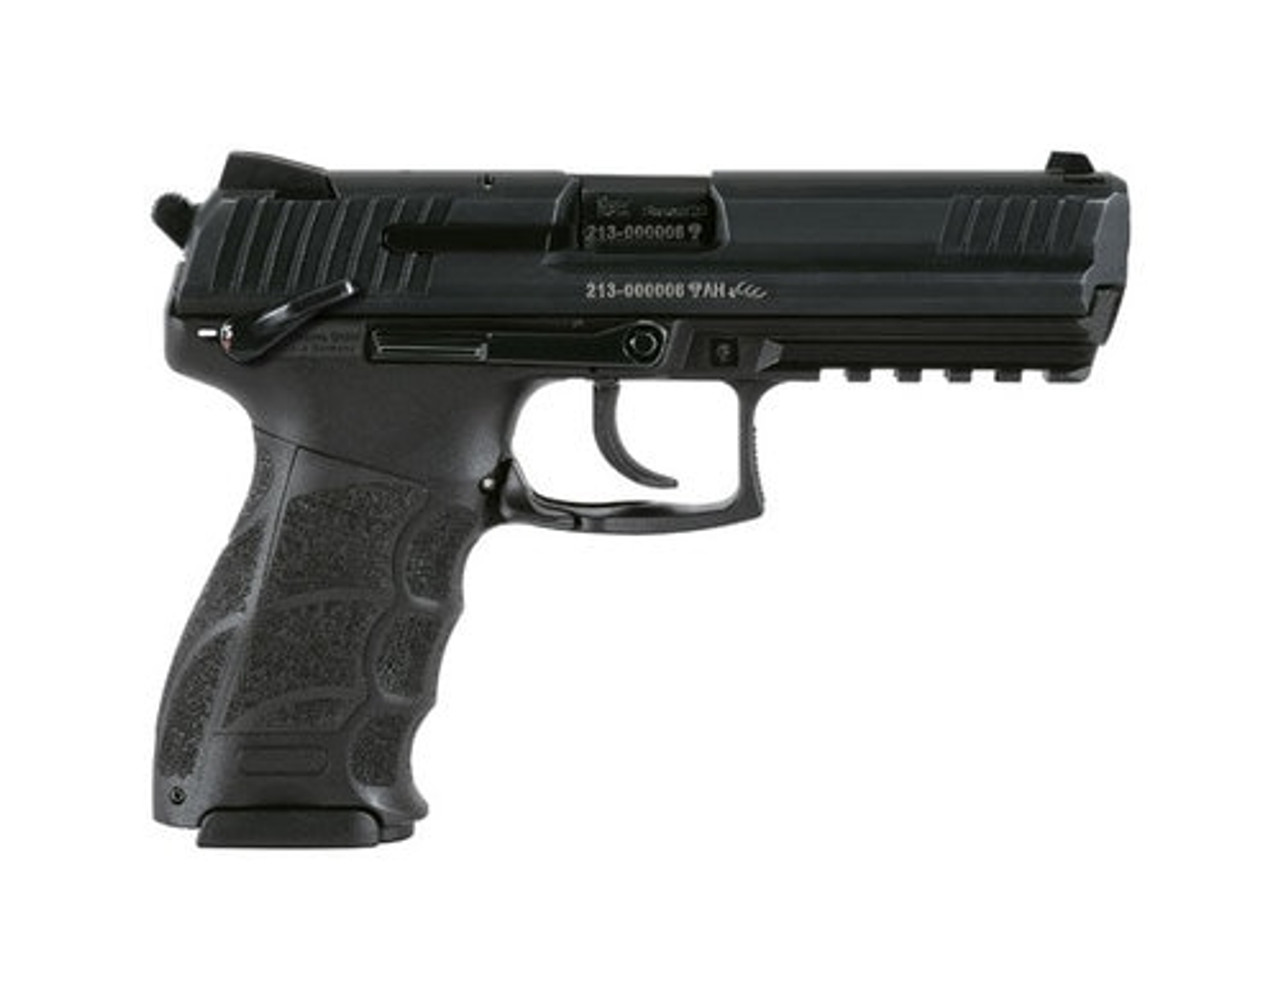 Heckler & Koch P30LS 9mm, Long Slide (V3) M730903LS‐A5 DA/SA, ambidextrous safety/rear decocking button, two 15rd magazines 642230247413